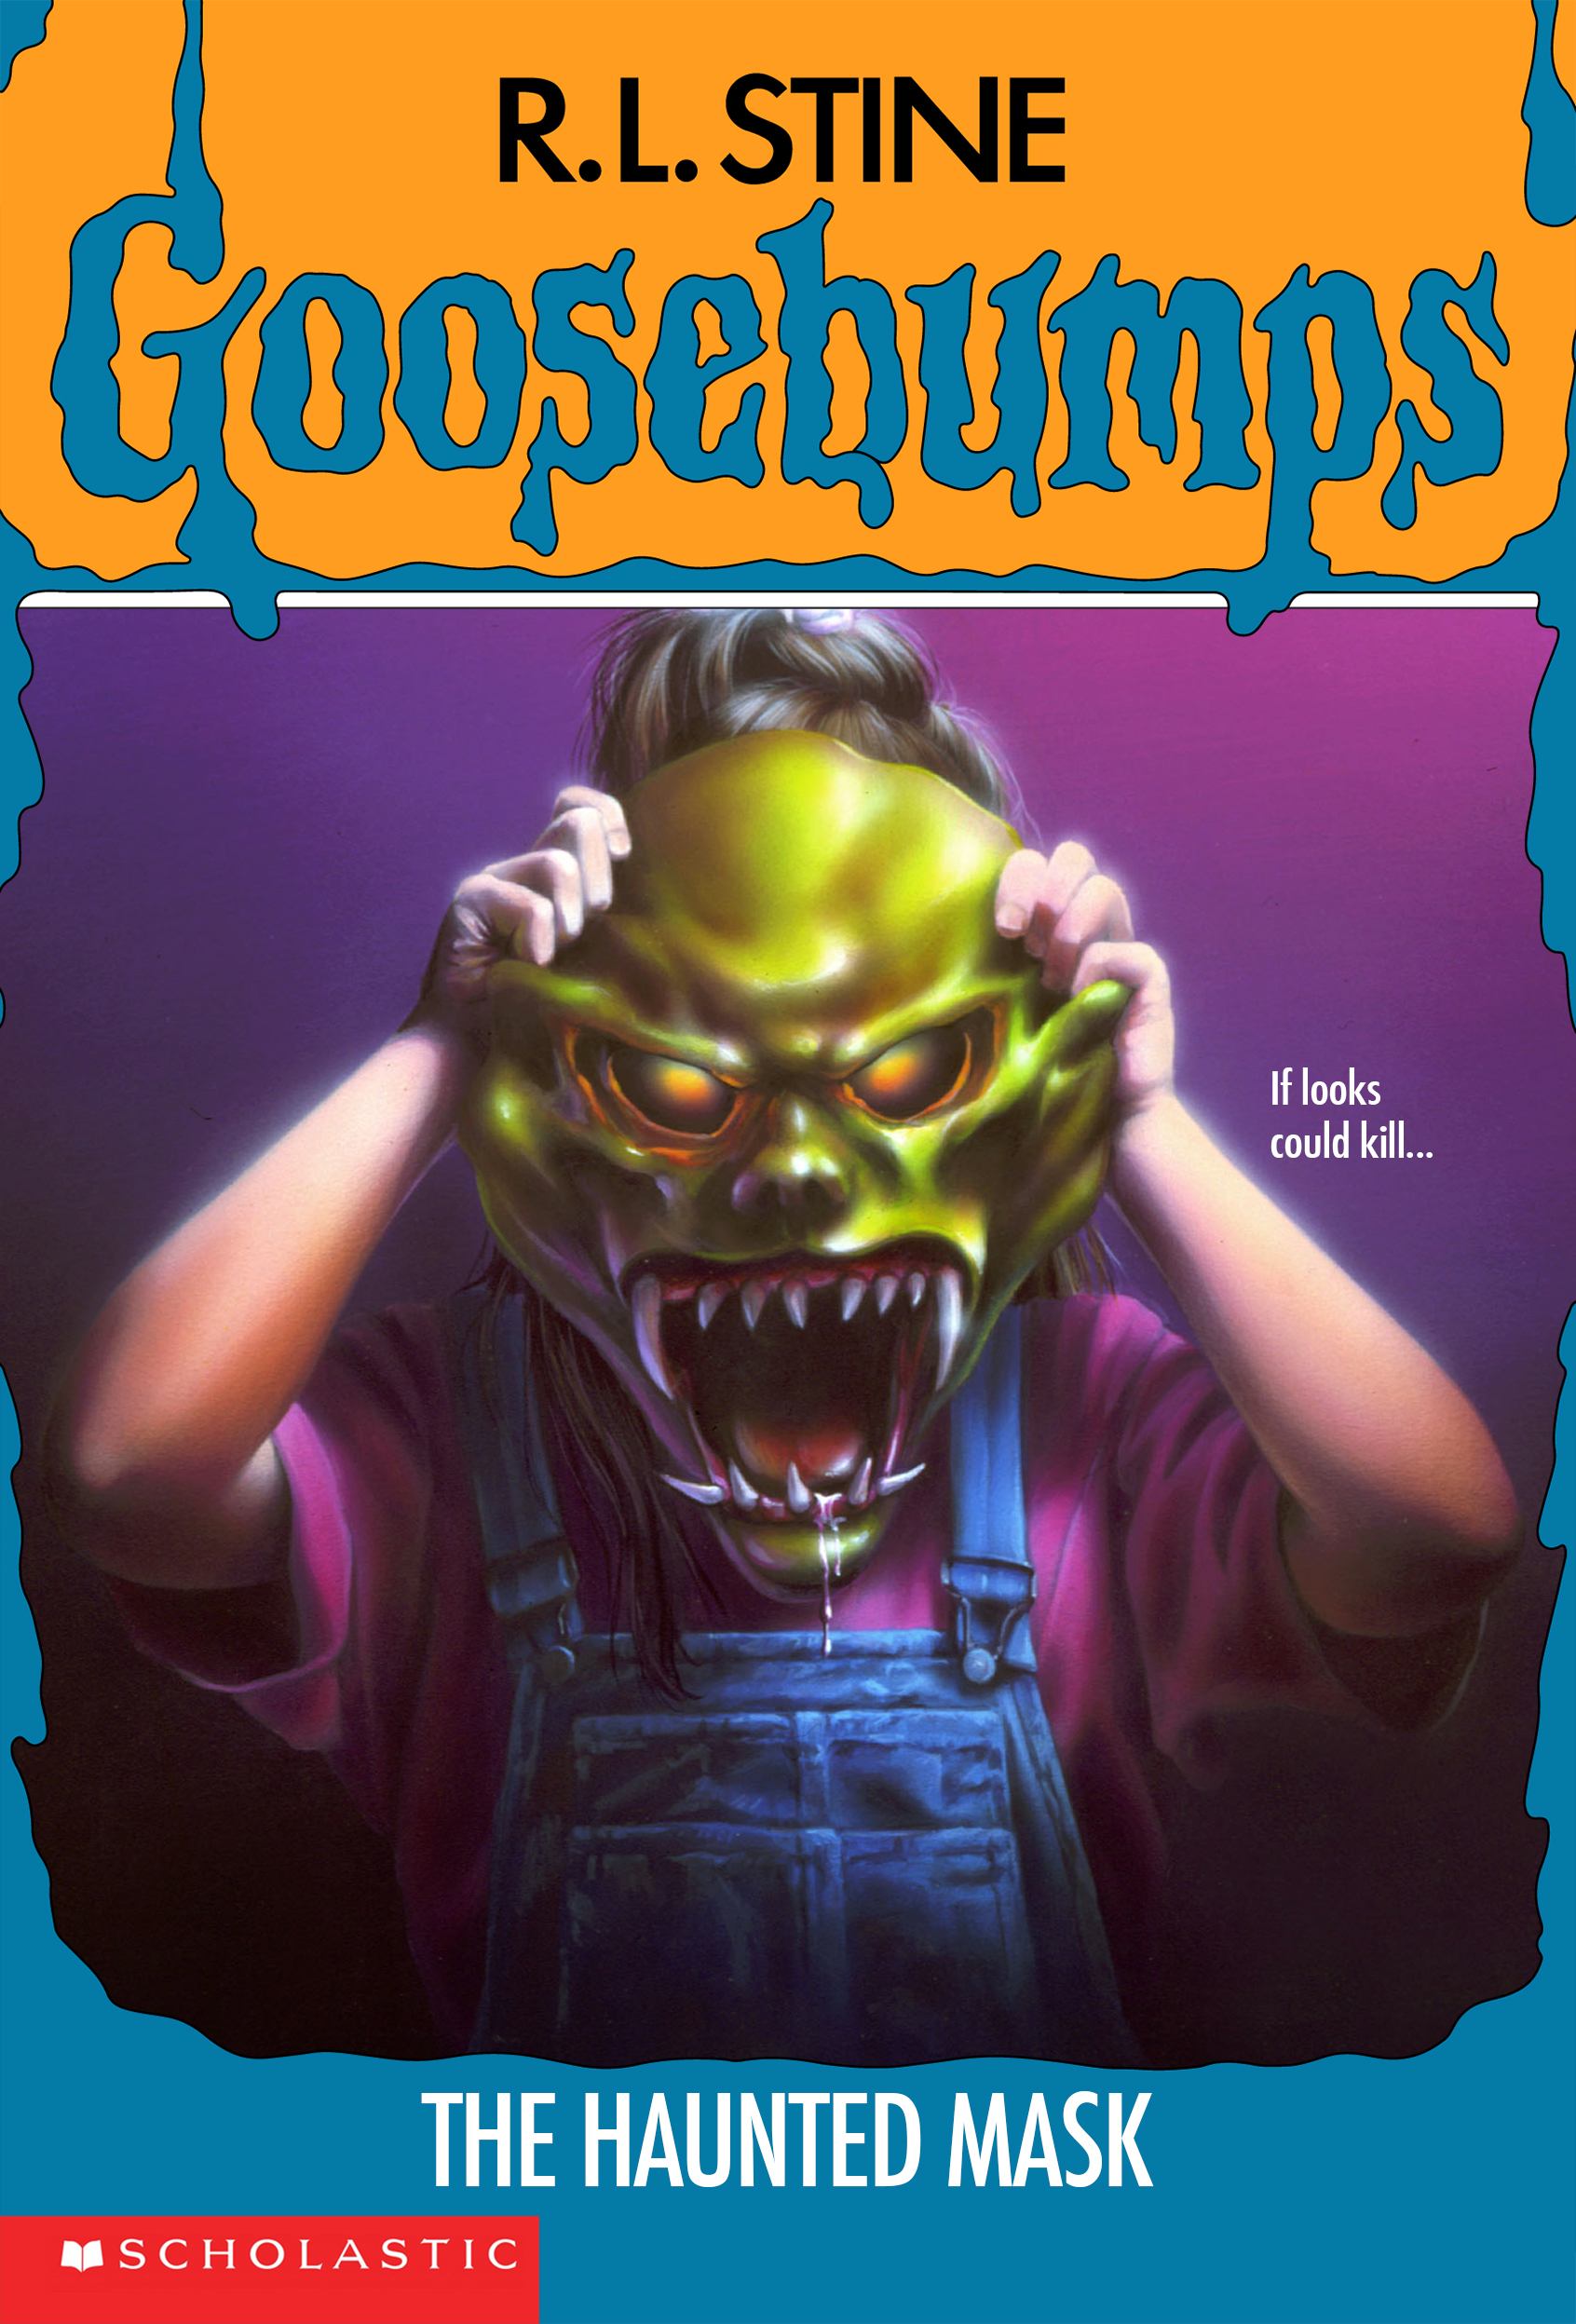 The Haunted Mask Book Goosebumps Wiki Fandom Powered By Wikia